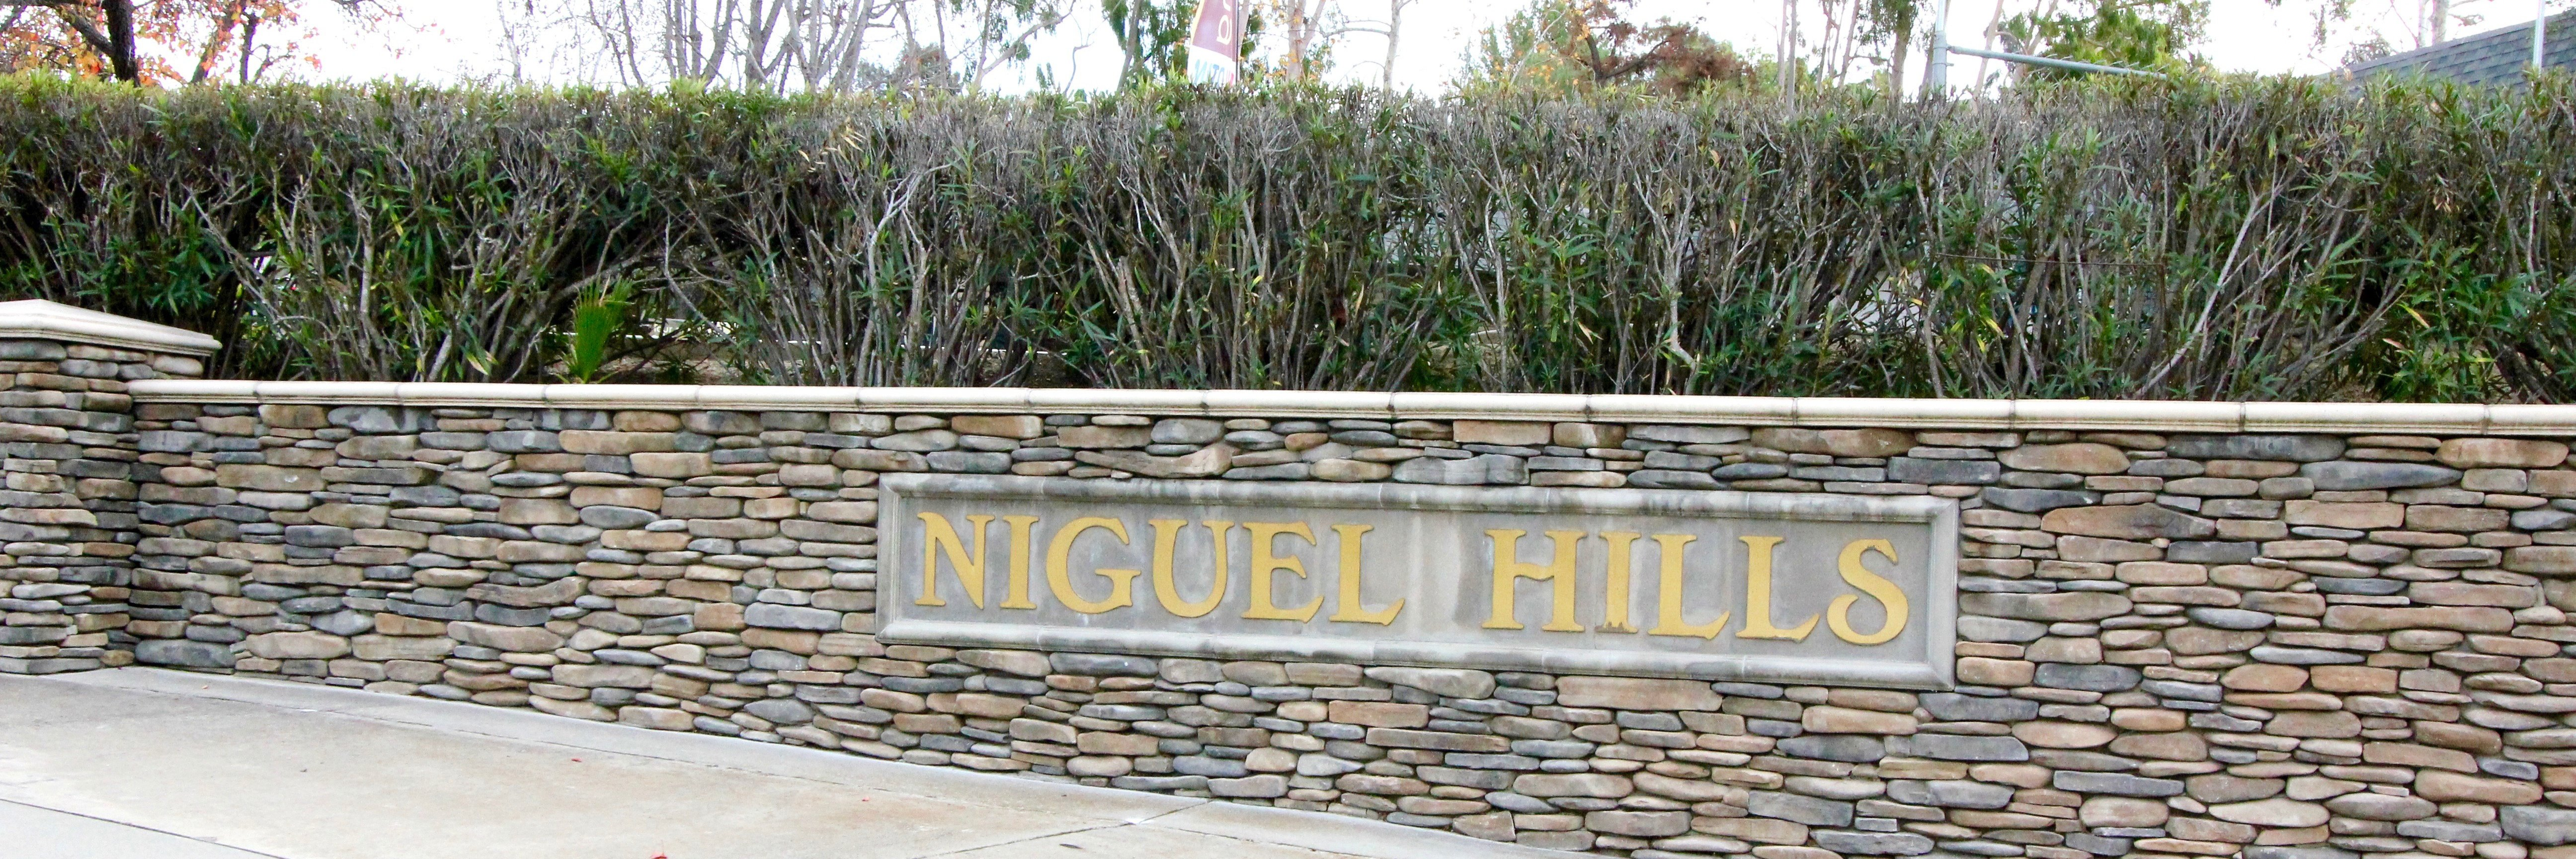 Niguel Hills is a neighborhood of homes located in Laguna Niguel California